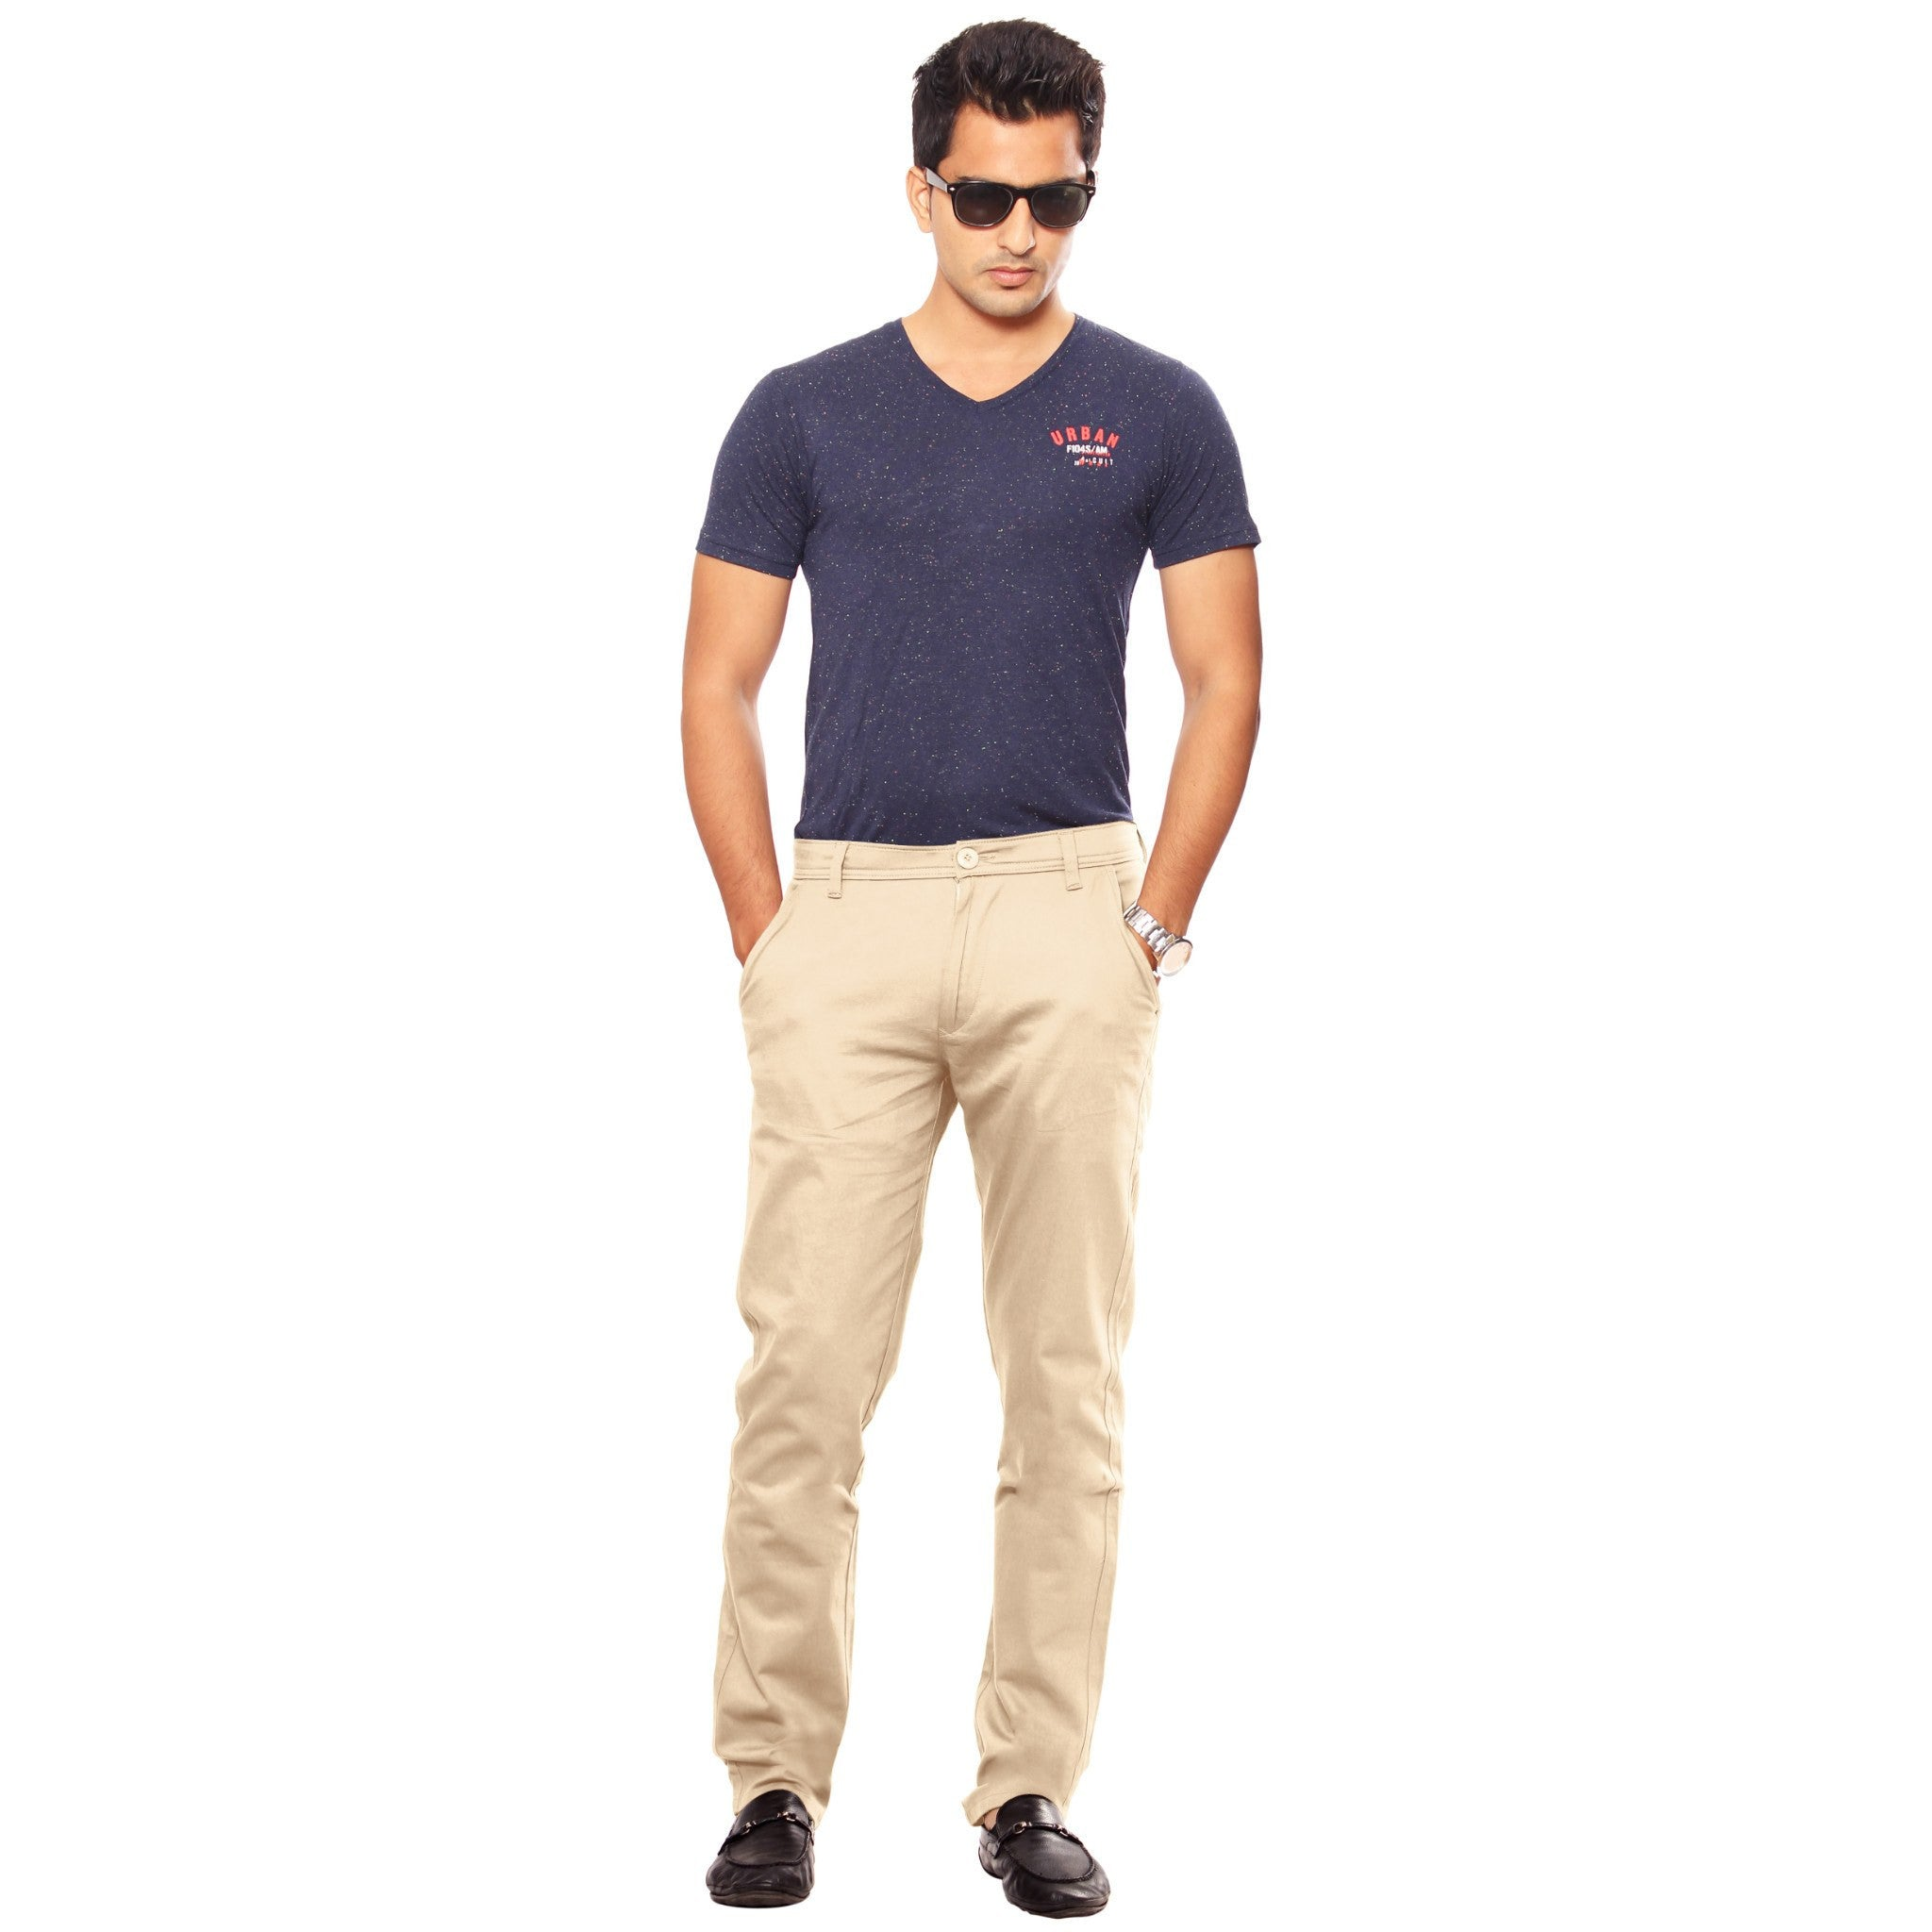 Uber Khaki skeek pant full view